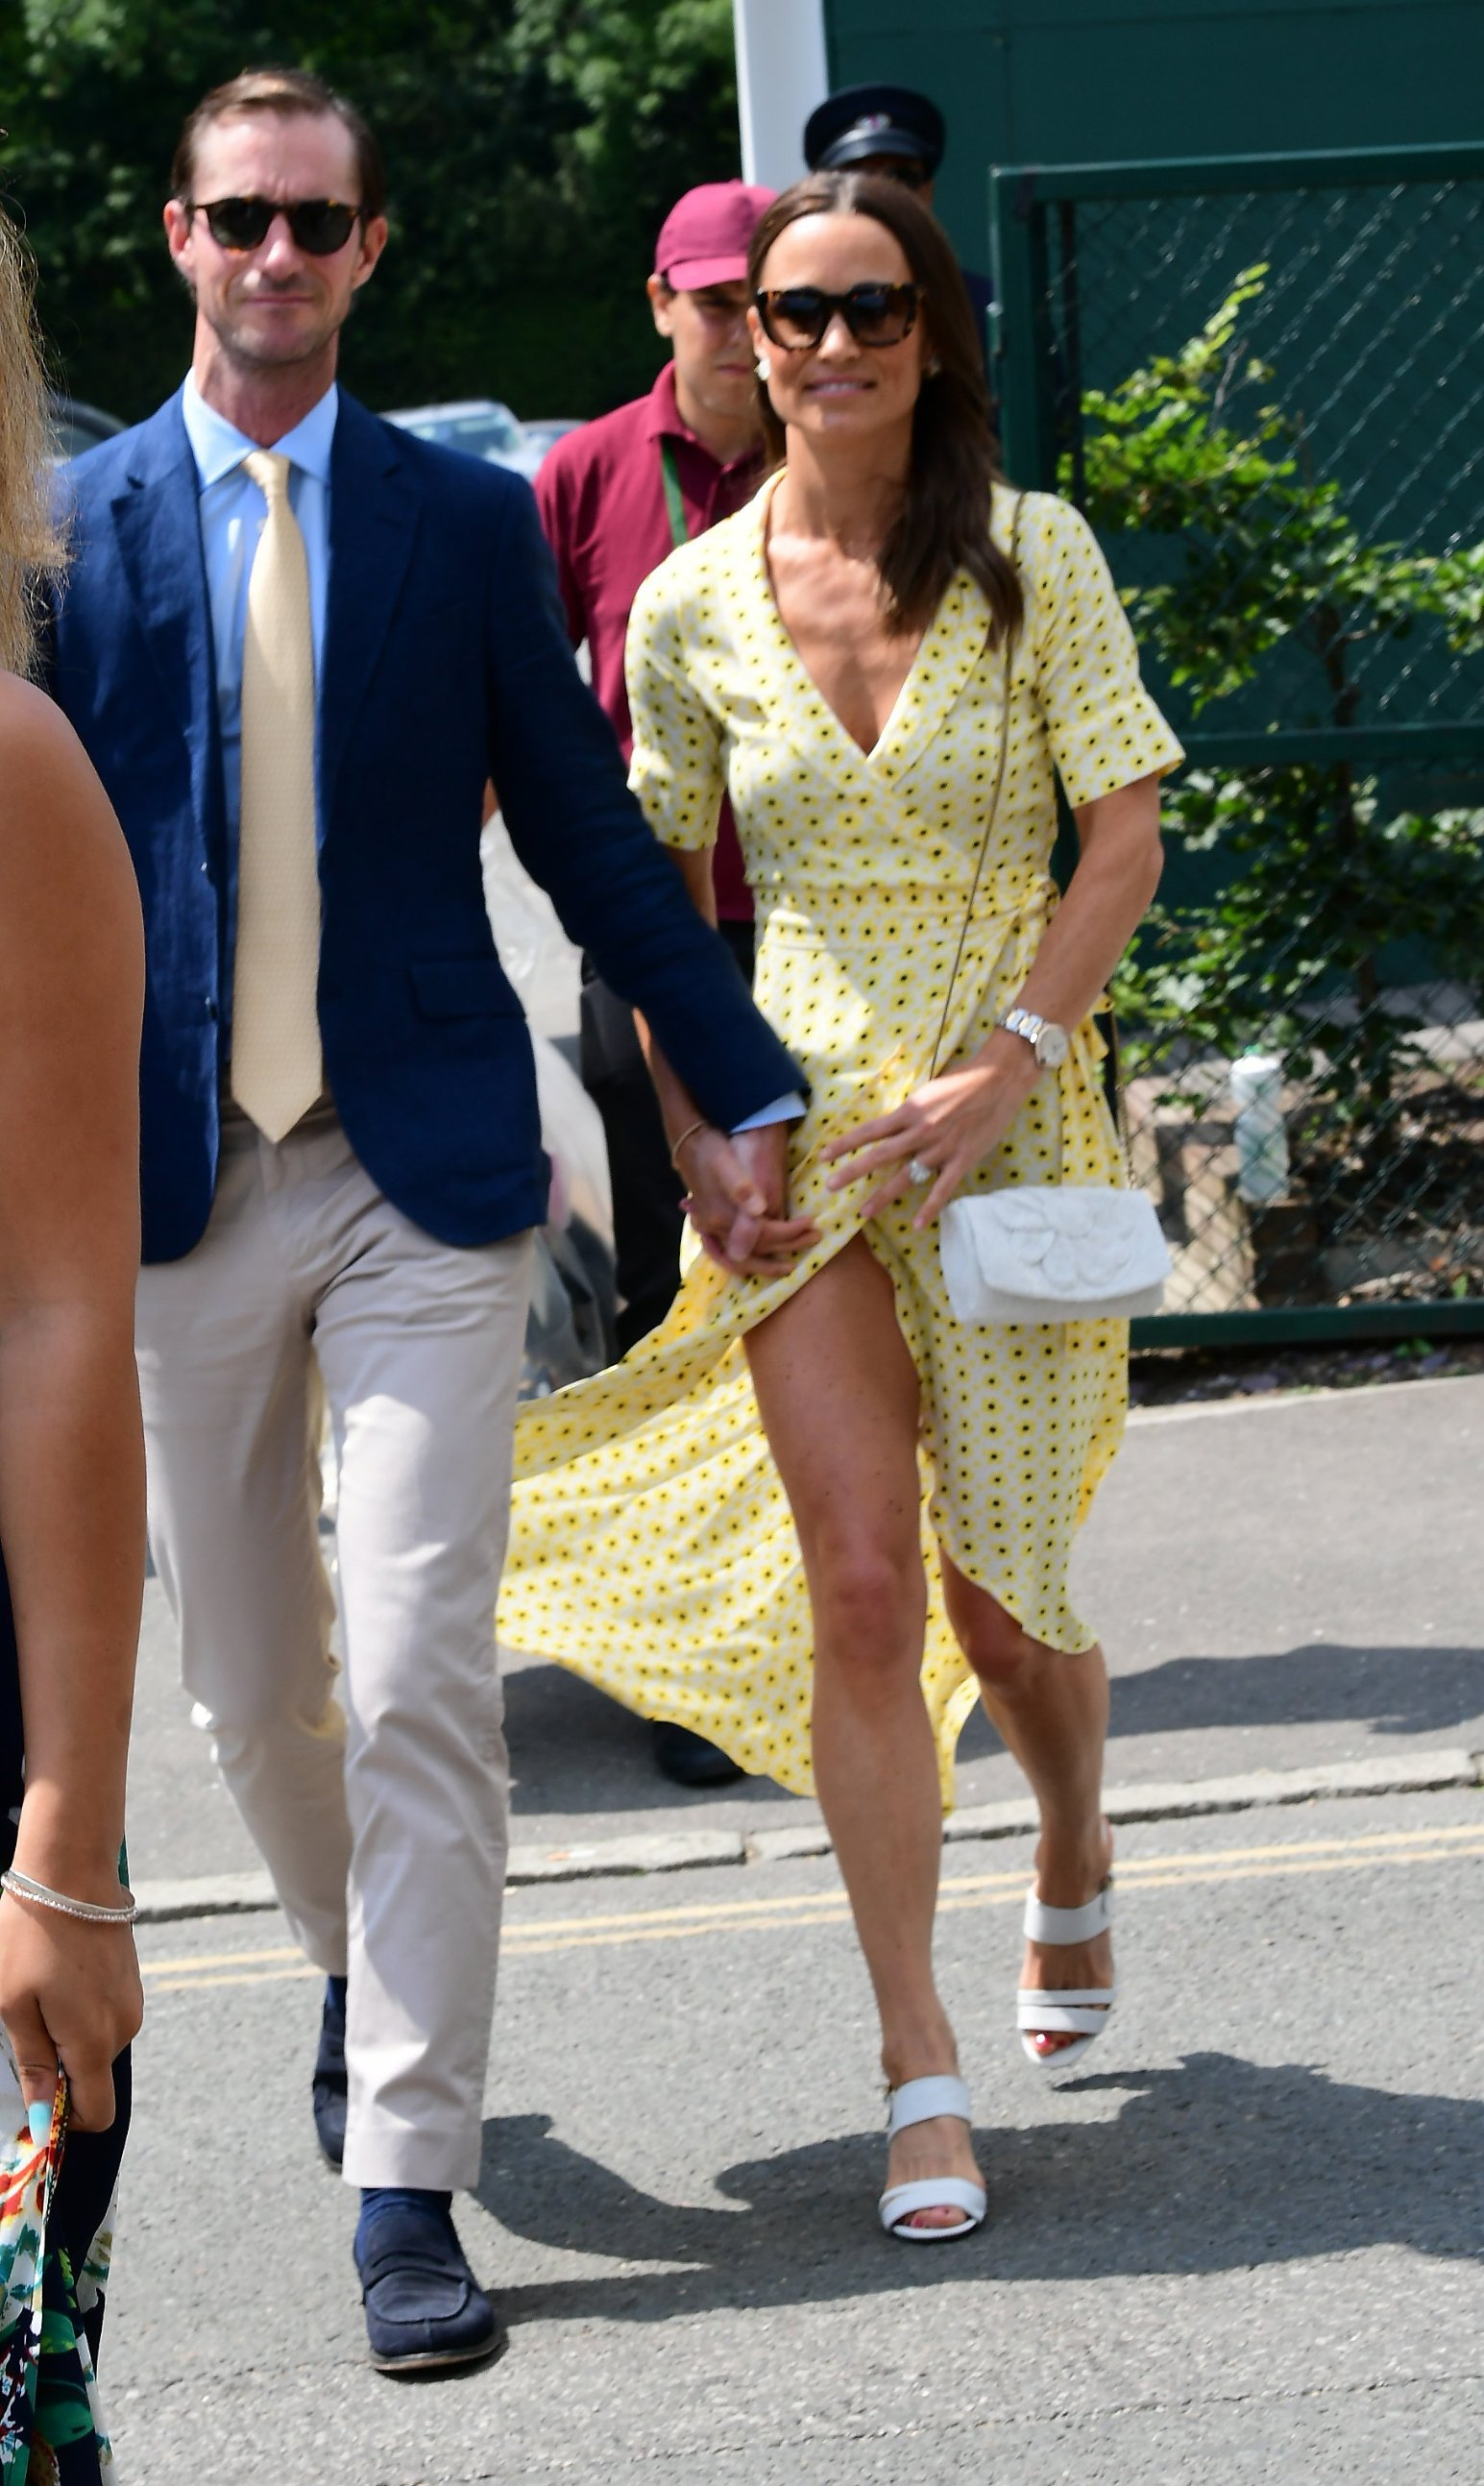 12 July 2019.  Pippa Middleton & James Matthews arrive at wimbledon Tennis   Pictured: Pippa Middleton, James Matthews, Image: 457881230, License: Rights-managed, Restrictions: , Model Release: no, Credit line: Profimedia, Goff Photos